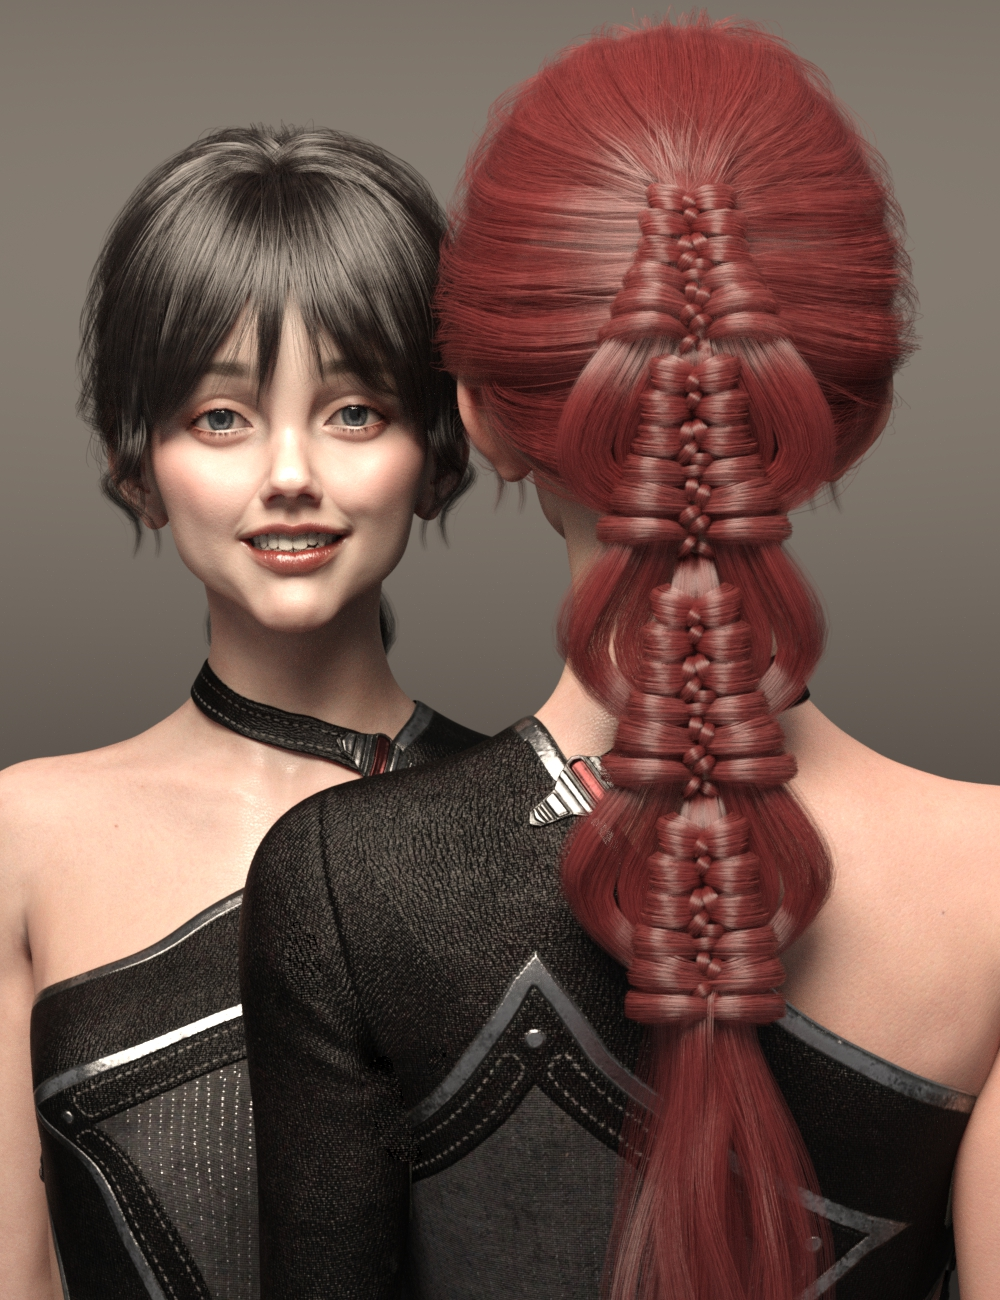 Hui Hair for Genesis 8 and 8.1 Females by: Ergou, 3D Models by Daz 3D